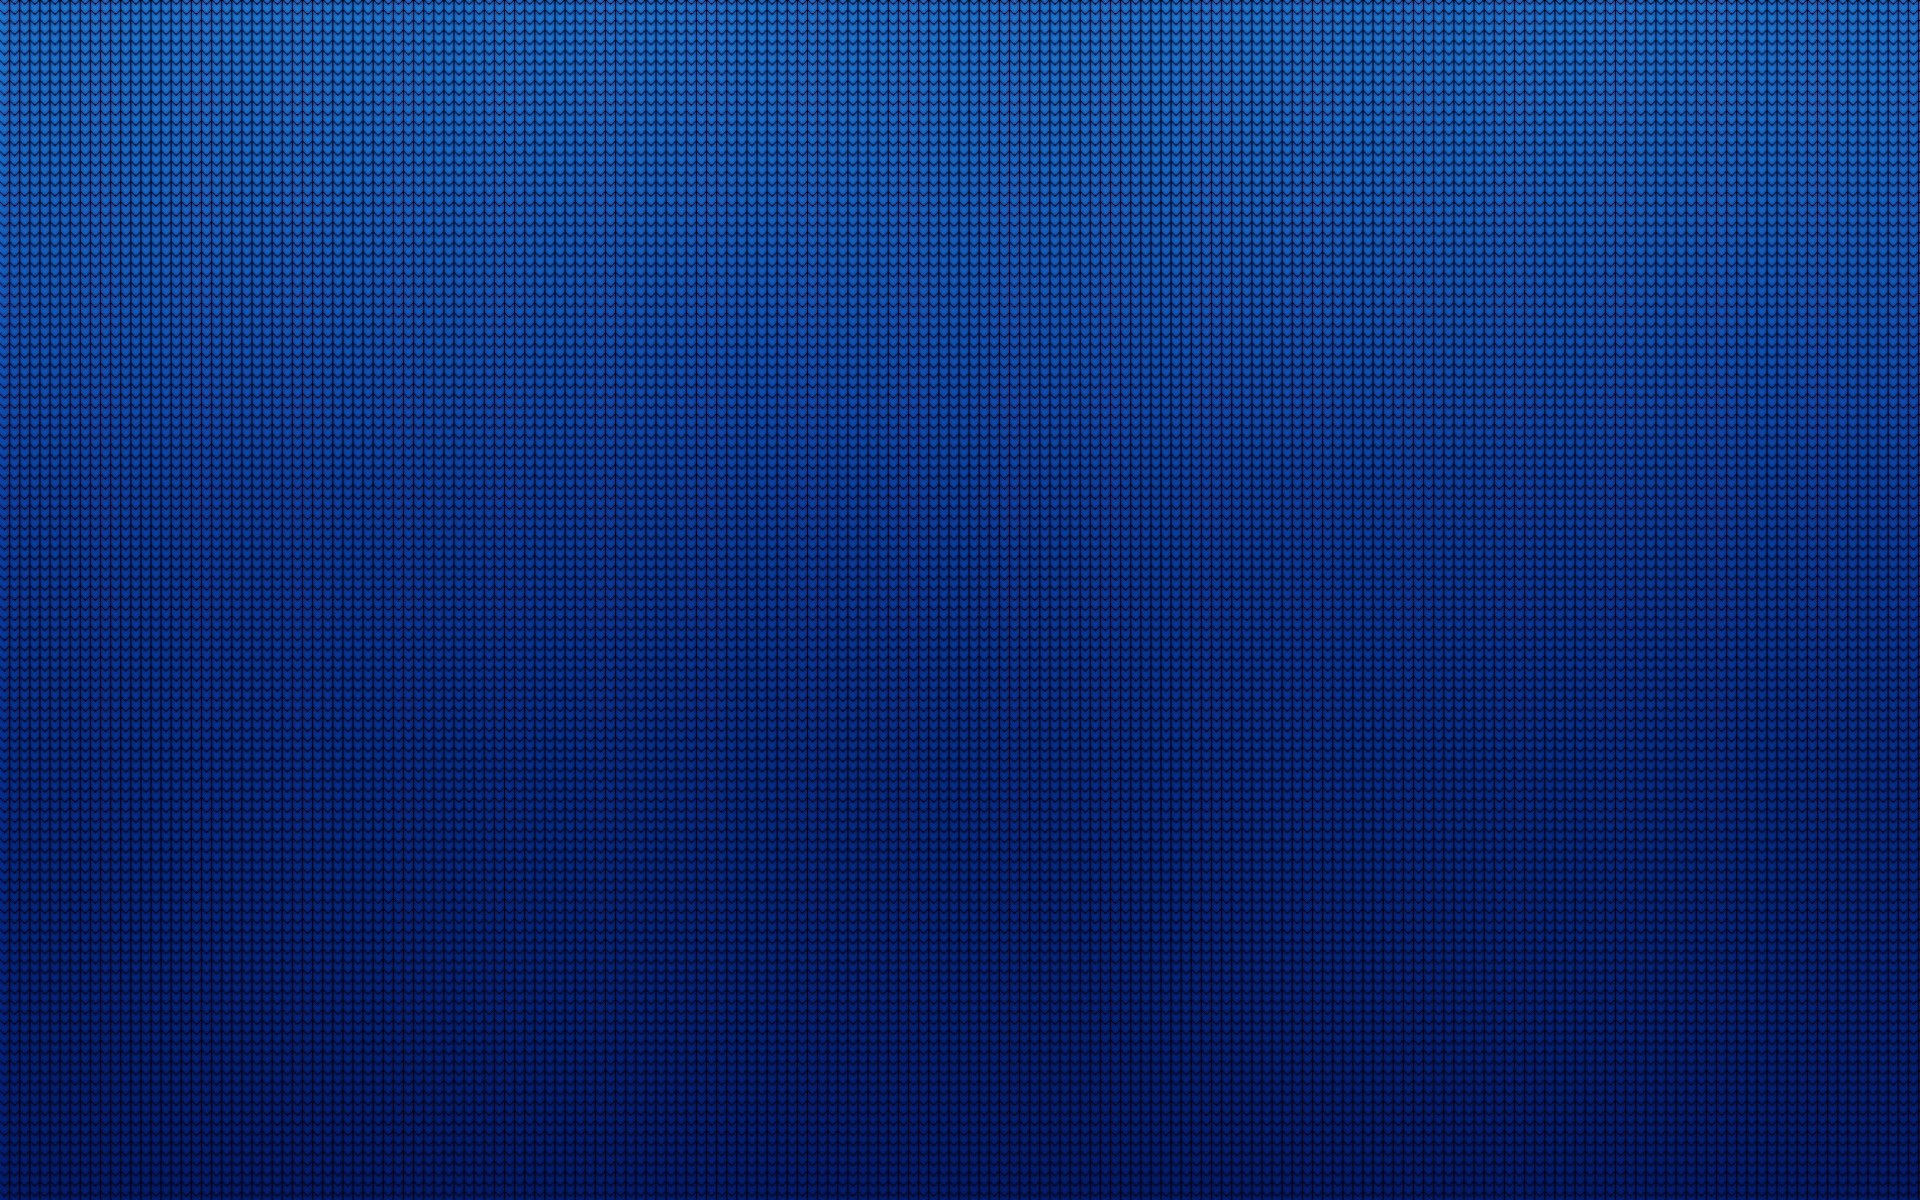 Blue Background Images Download Free Cool Hd Wallpapers For